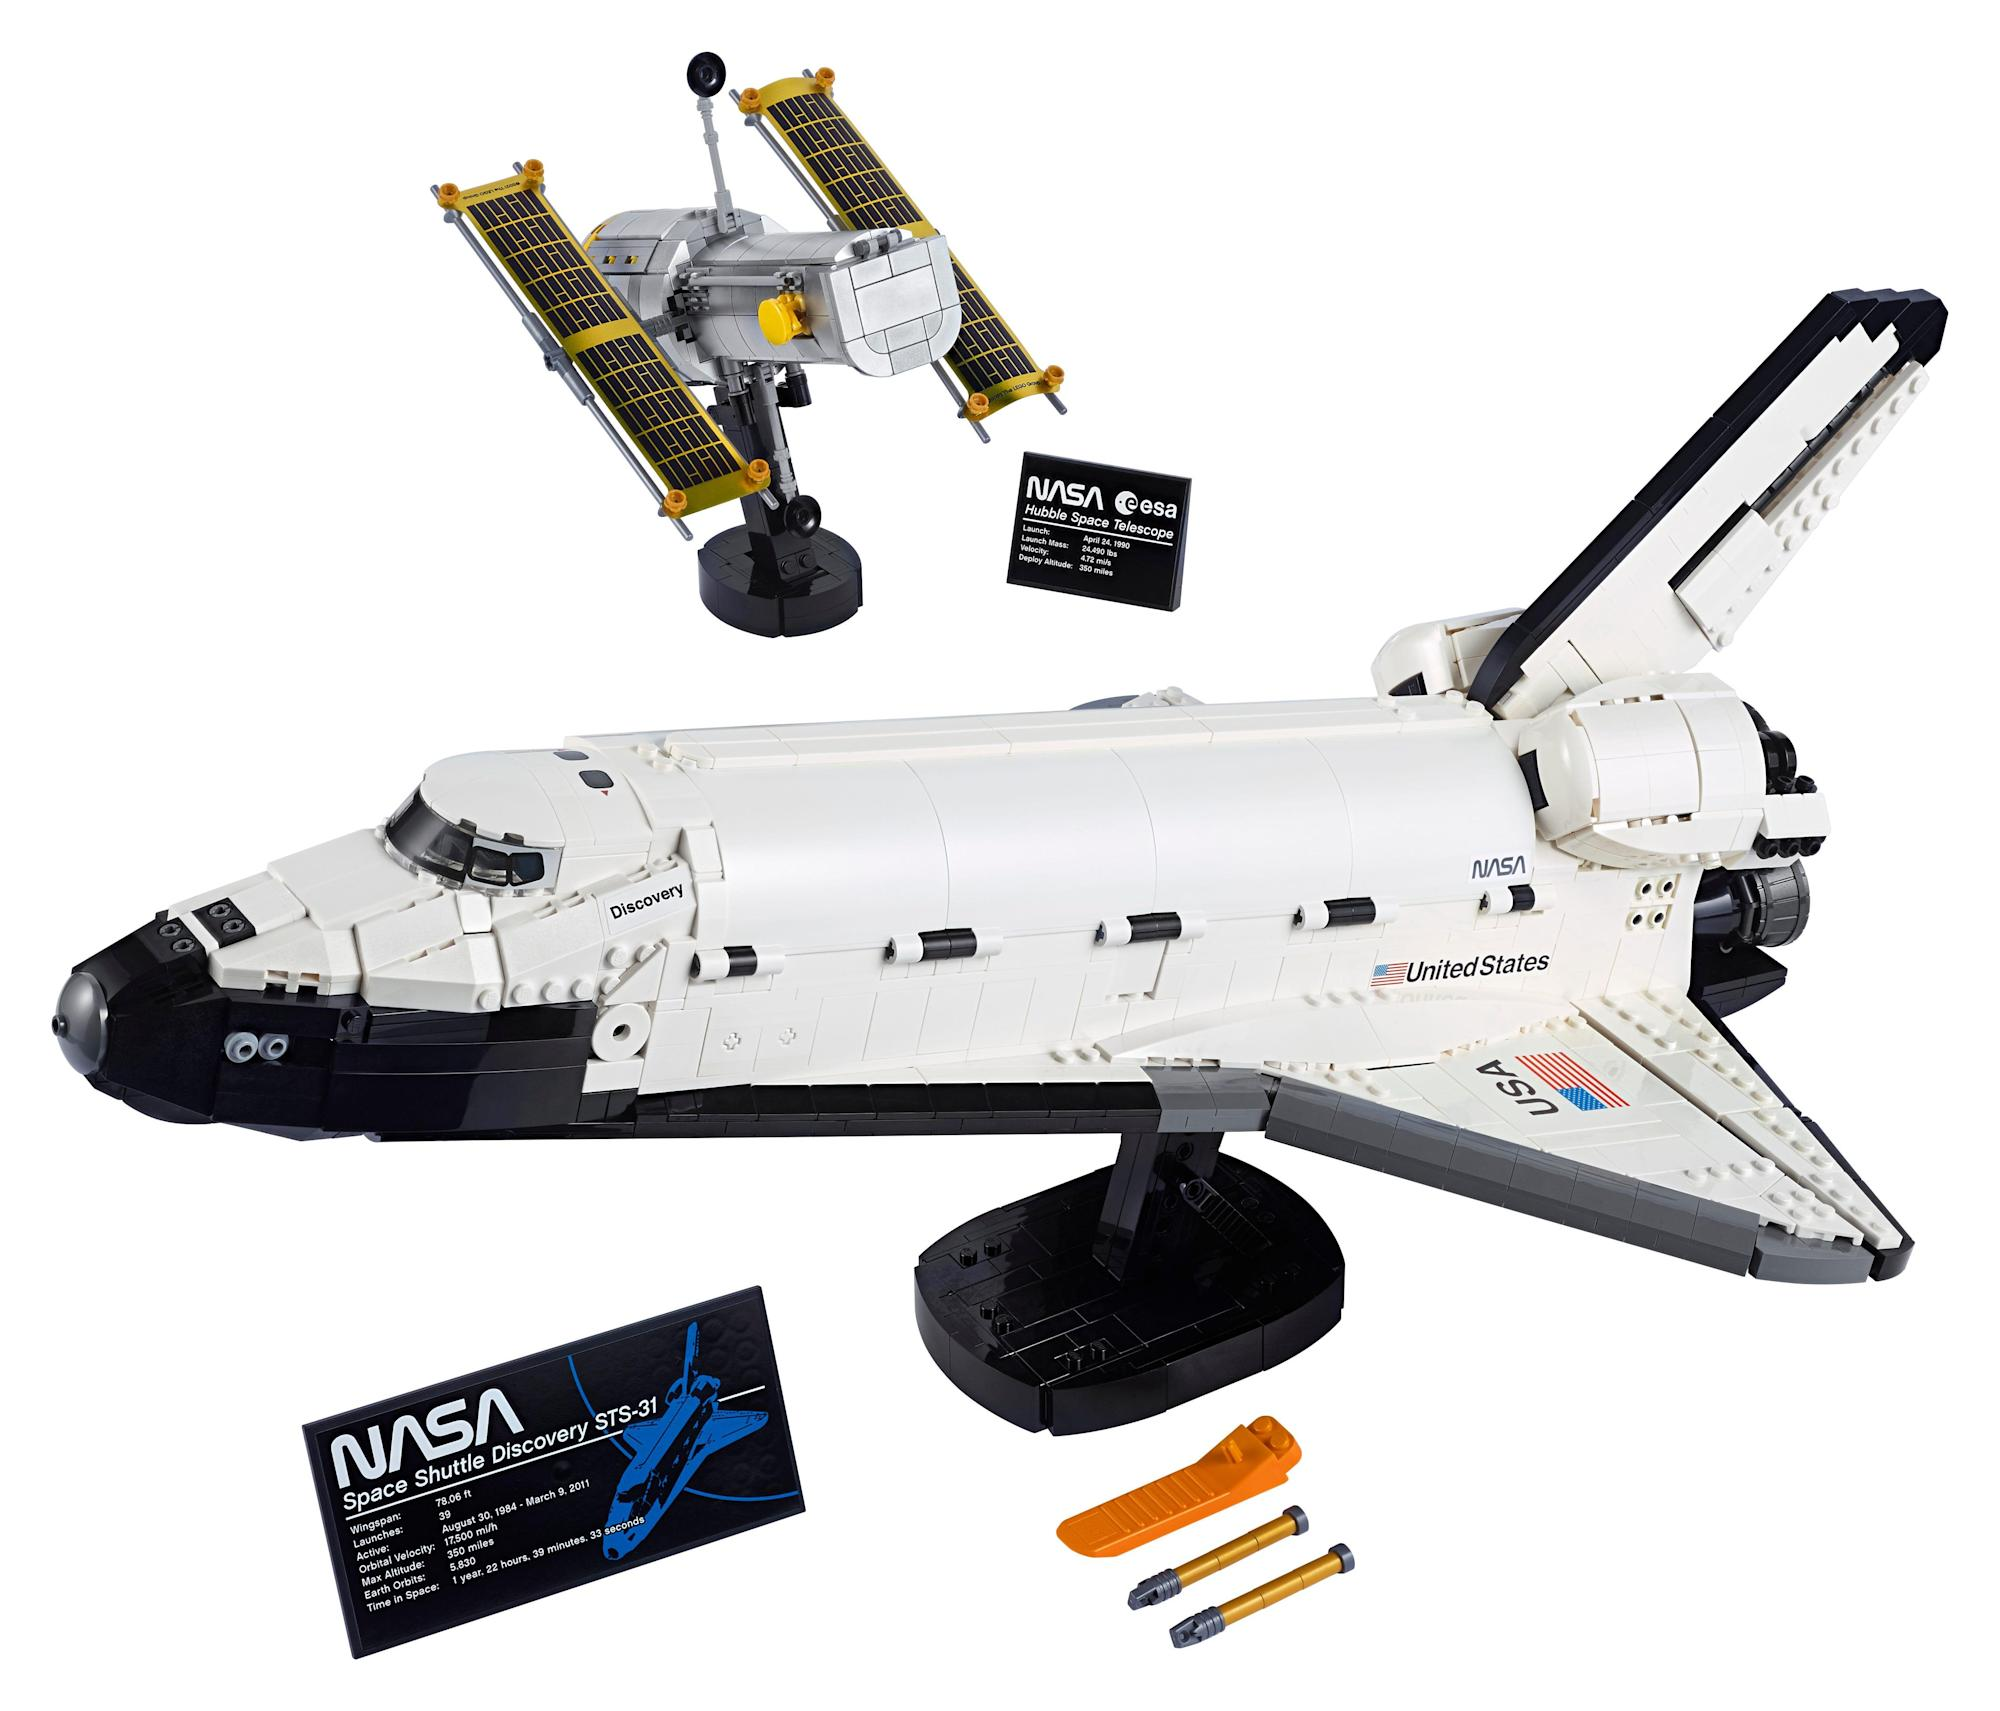 Lego is launching a Space Shuttle Discovery set with more than 2,300 pieces